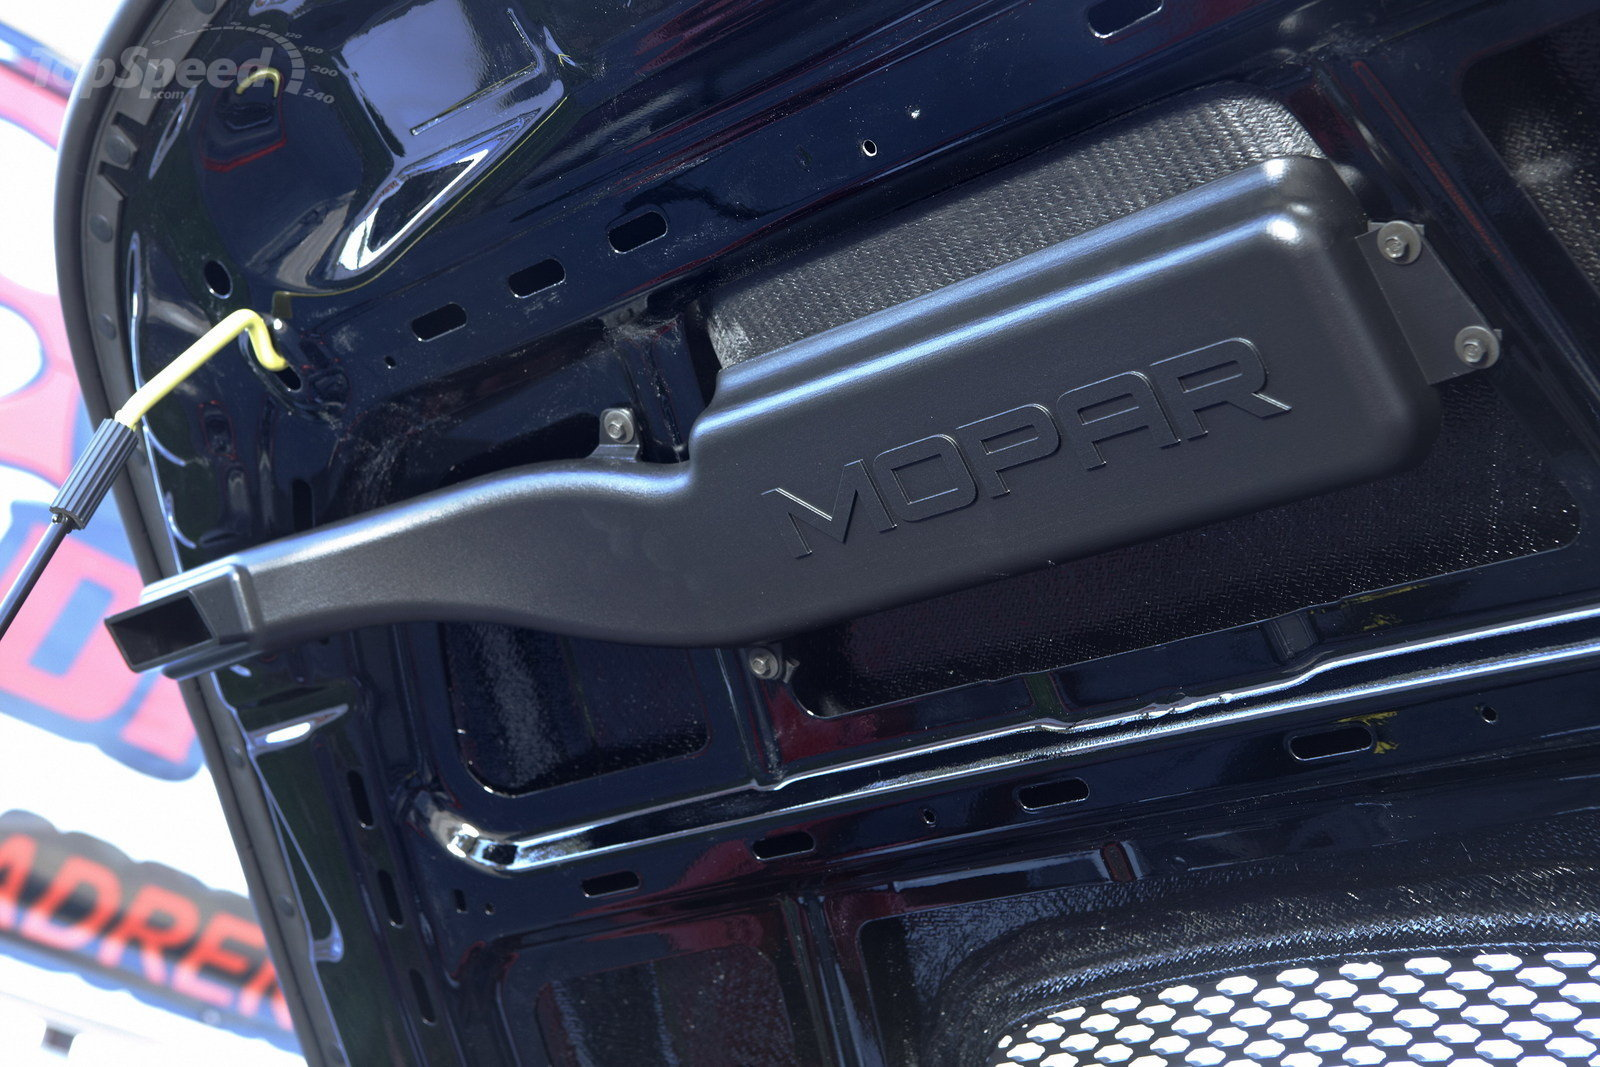 Gts Tribute Hood And Mopar Ram Air Intake Compatibility